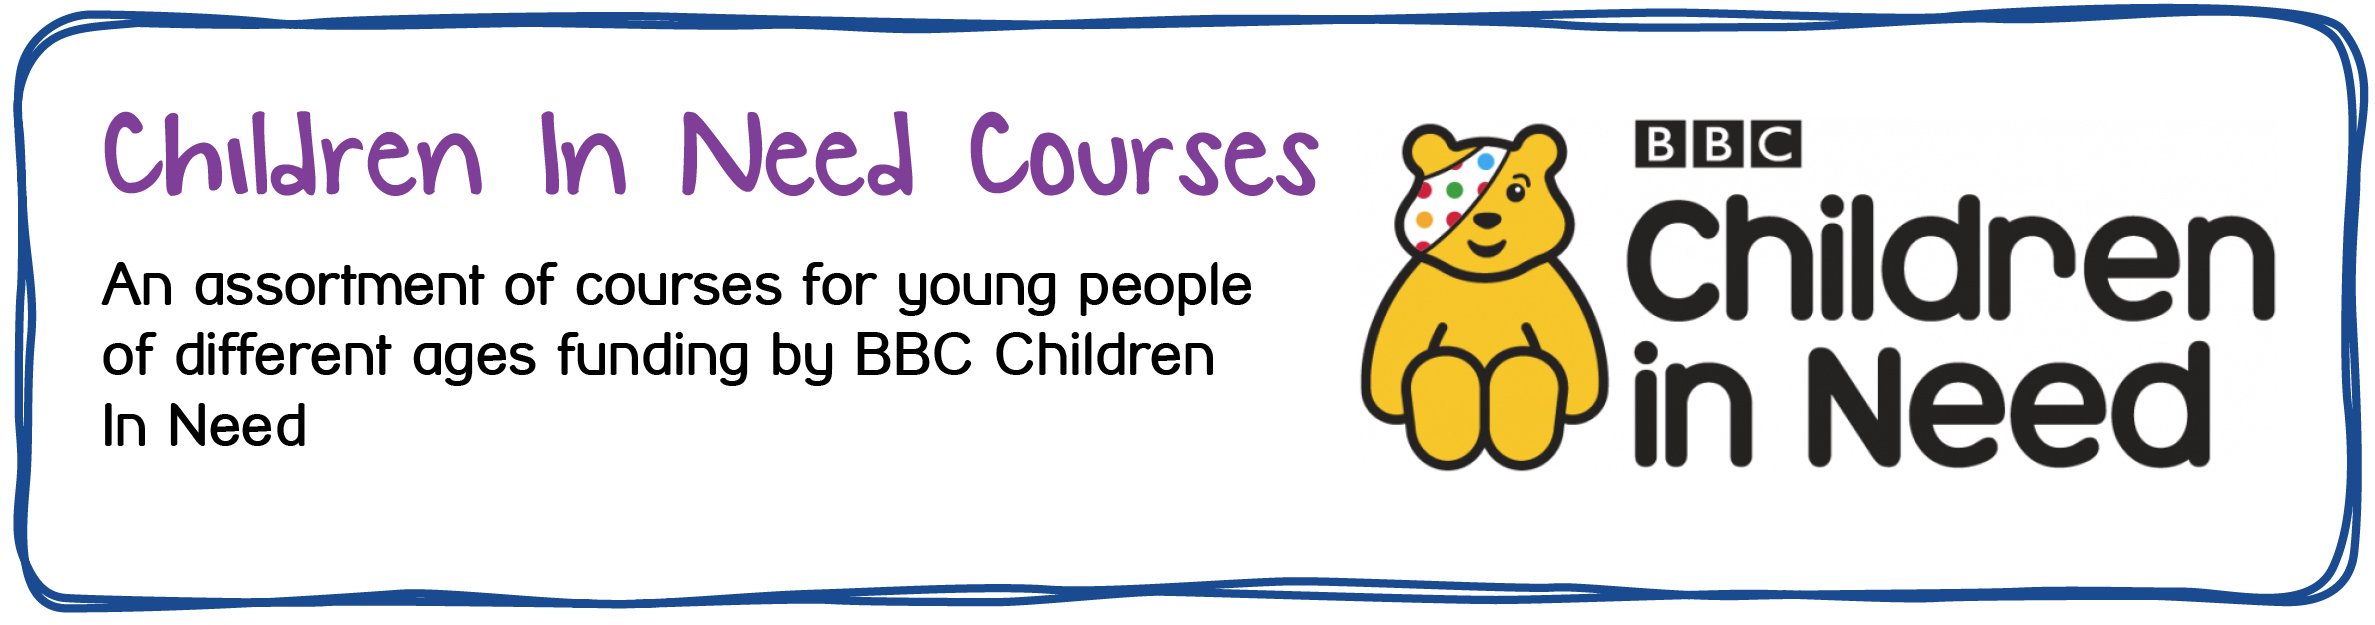 Maidstone and Mid-Kent Mind Youth Services - Children In Need - An assortment of youth courses funded by Children In Need.